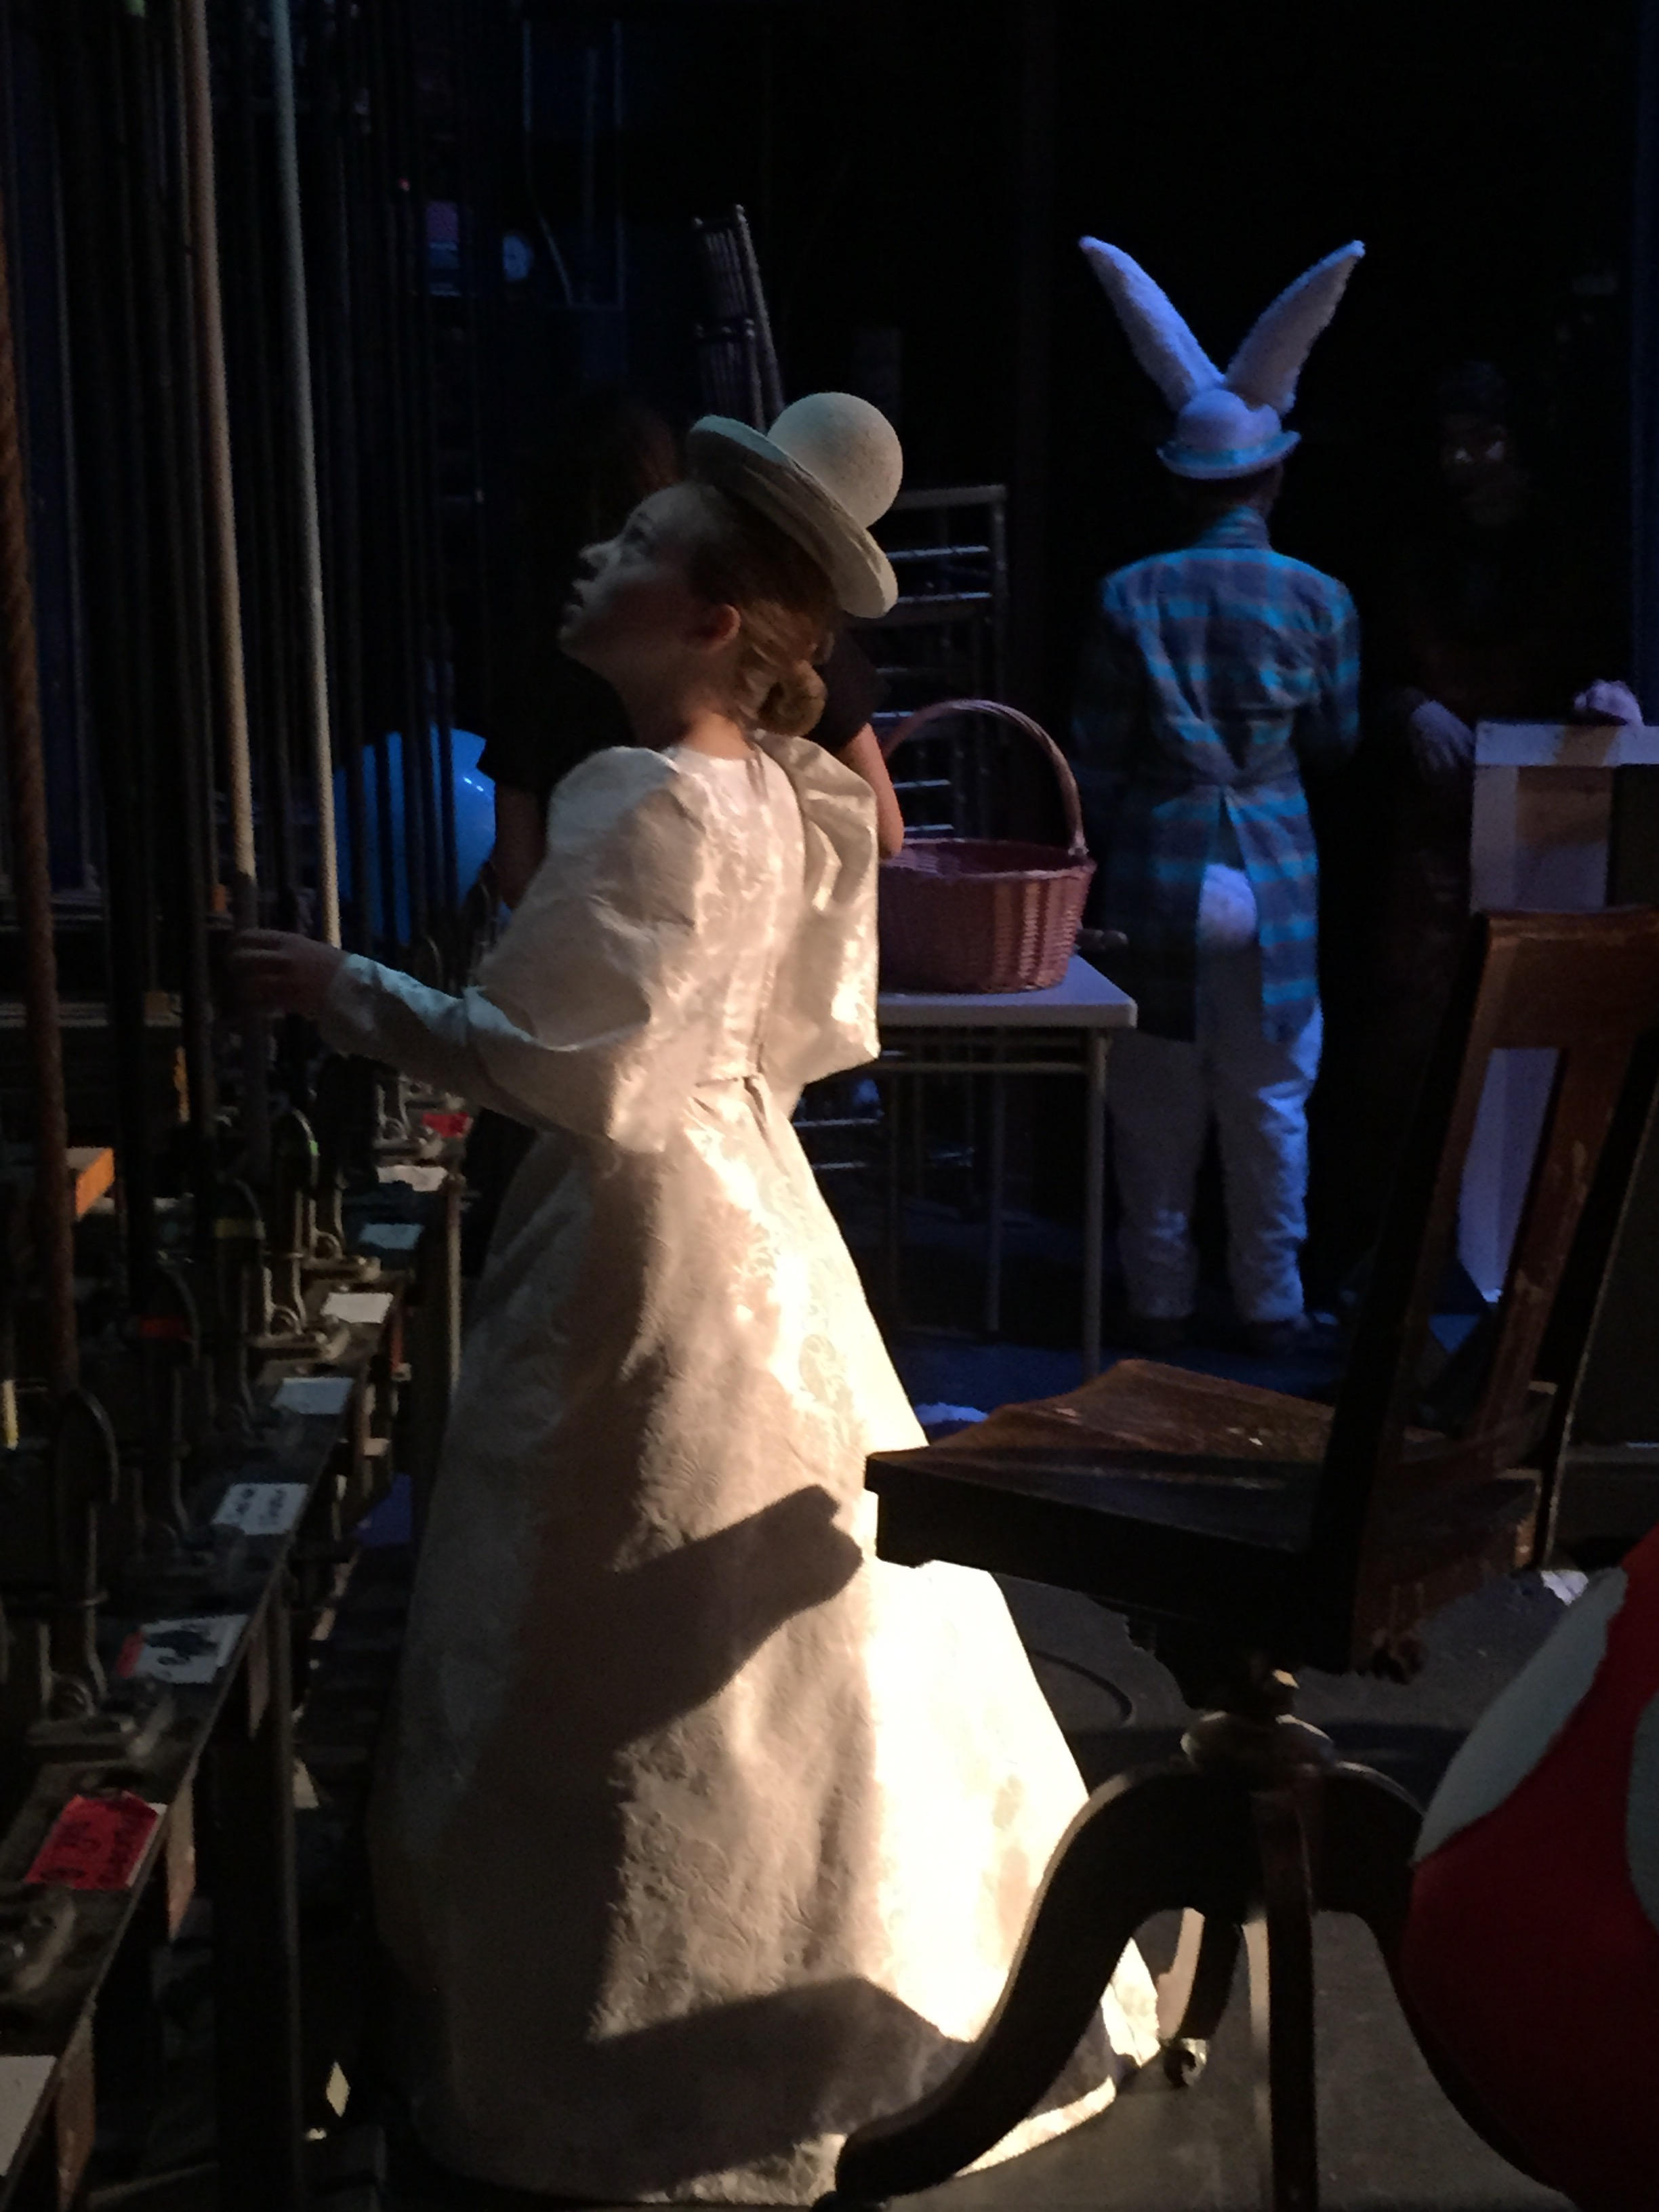 Chess Piece and Rabbit, Backstage